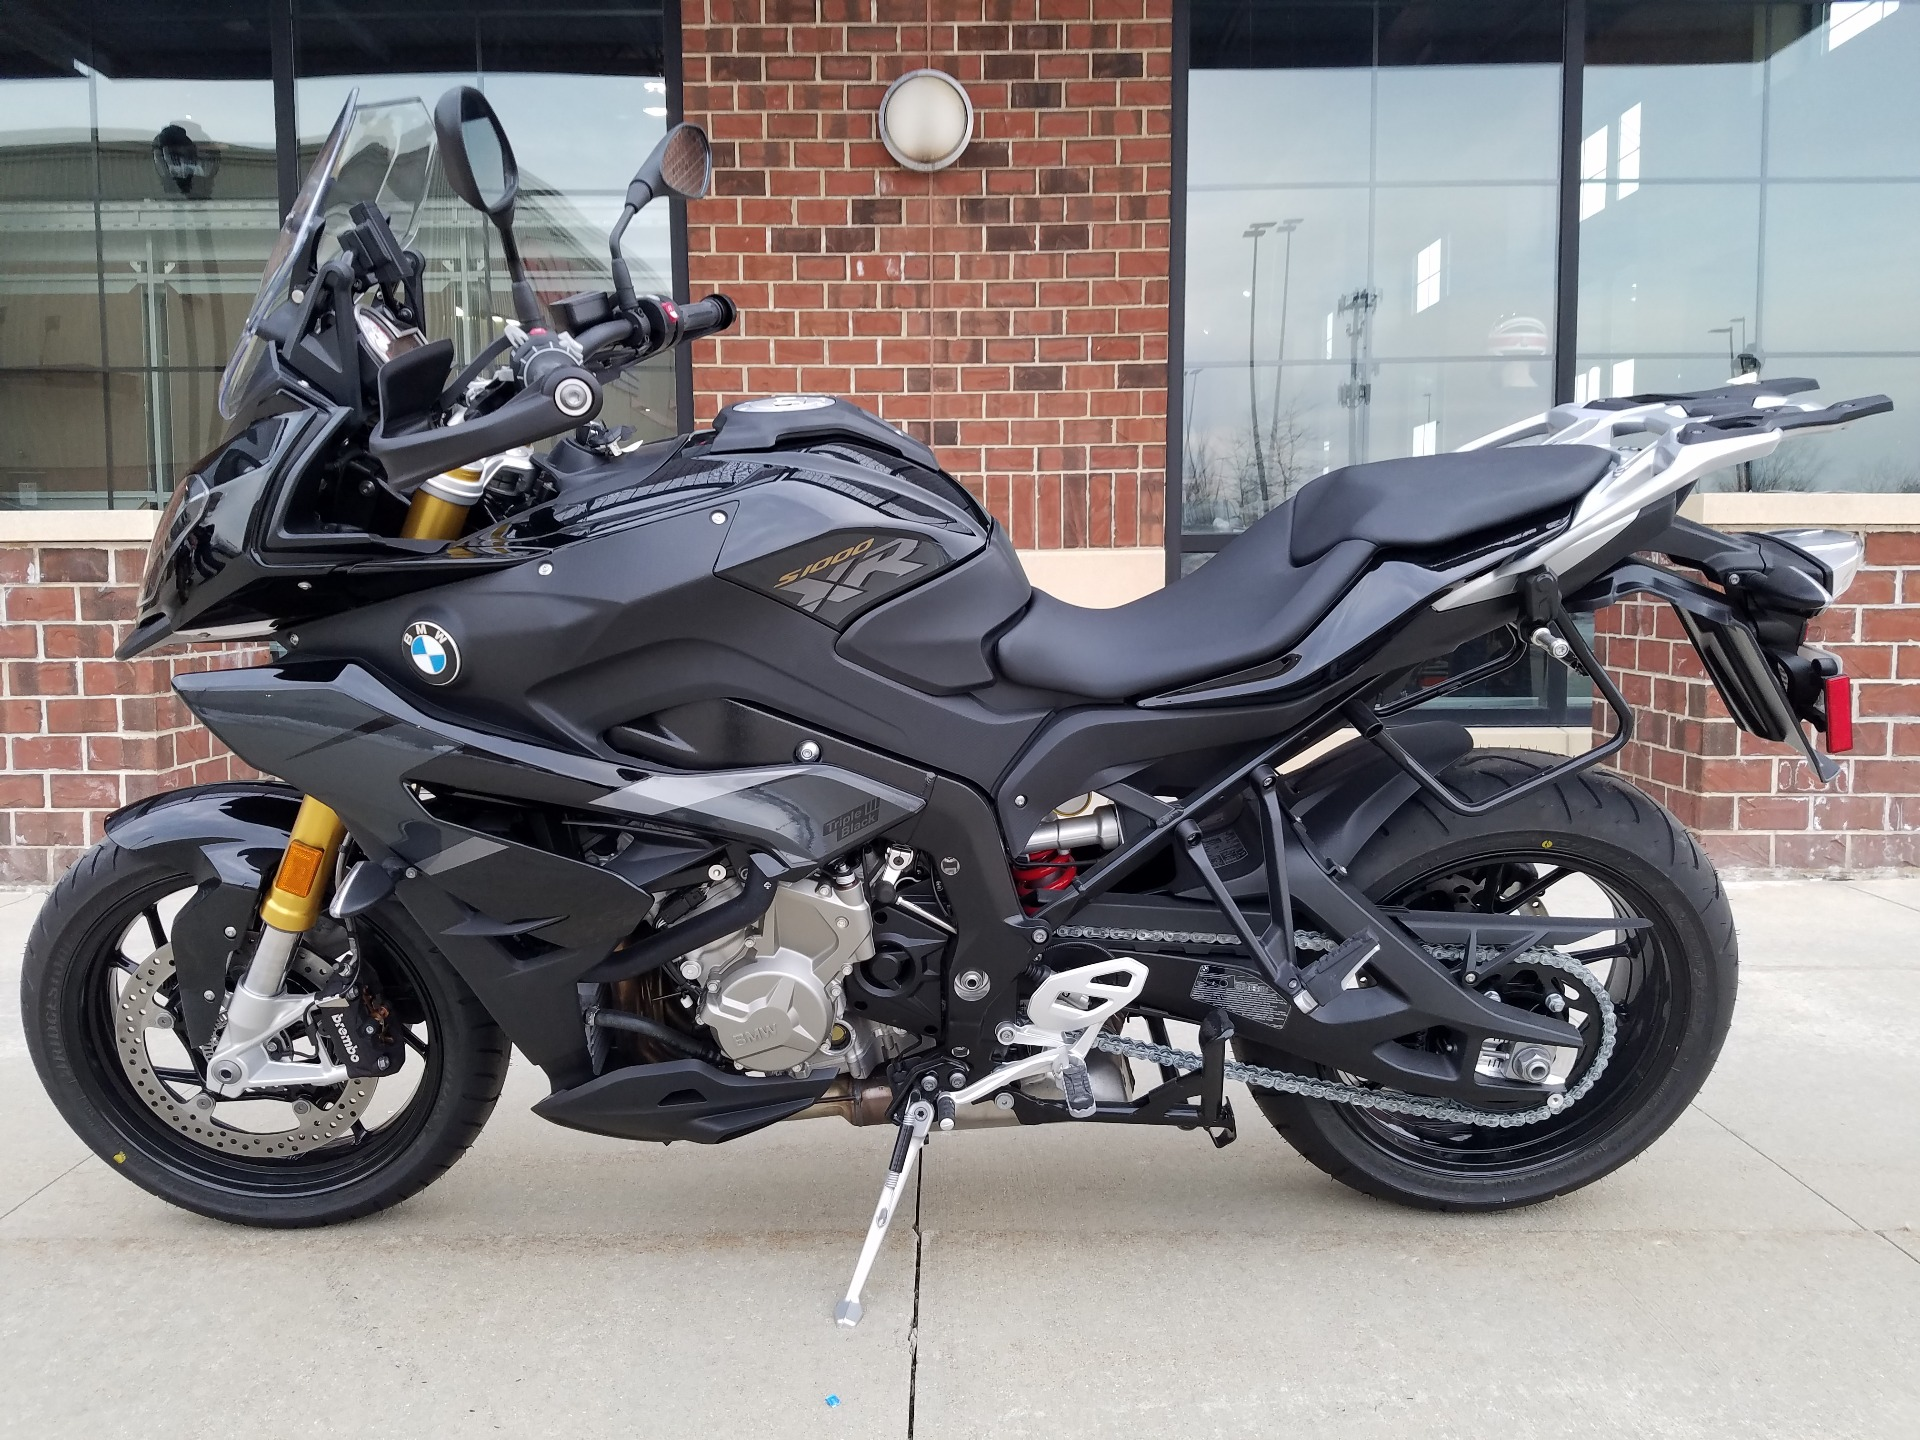 2019 Bmw S 1000 Xr Motorcycles Saint Charles Illinois